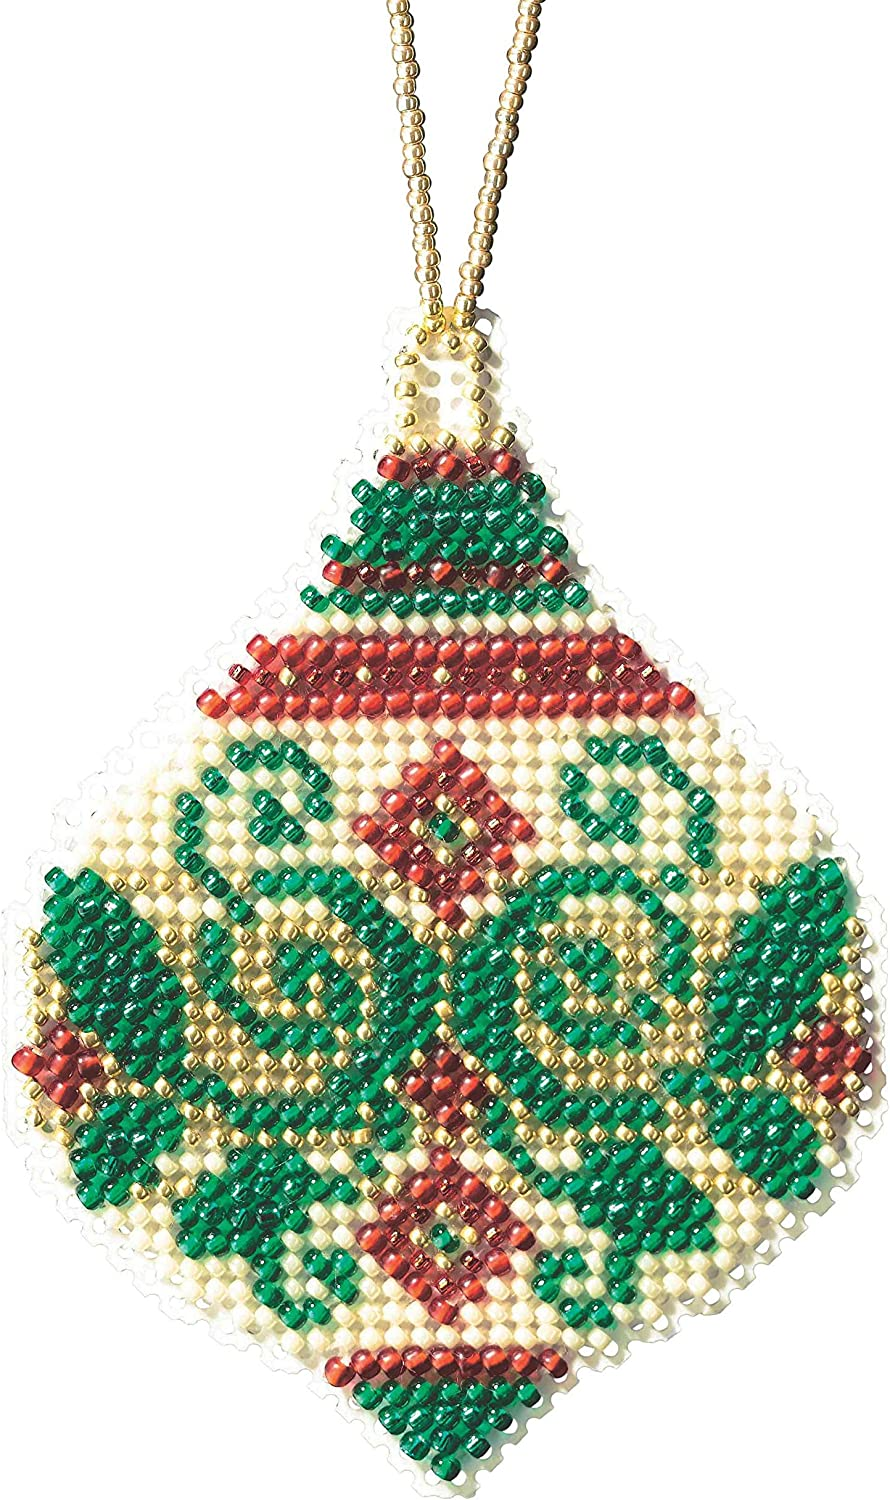 Emerald Flourish Beaded Counted Cross Stitch Ornament Kit Mill Hill 2019 Beaded Holiday MH211911